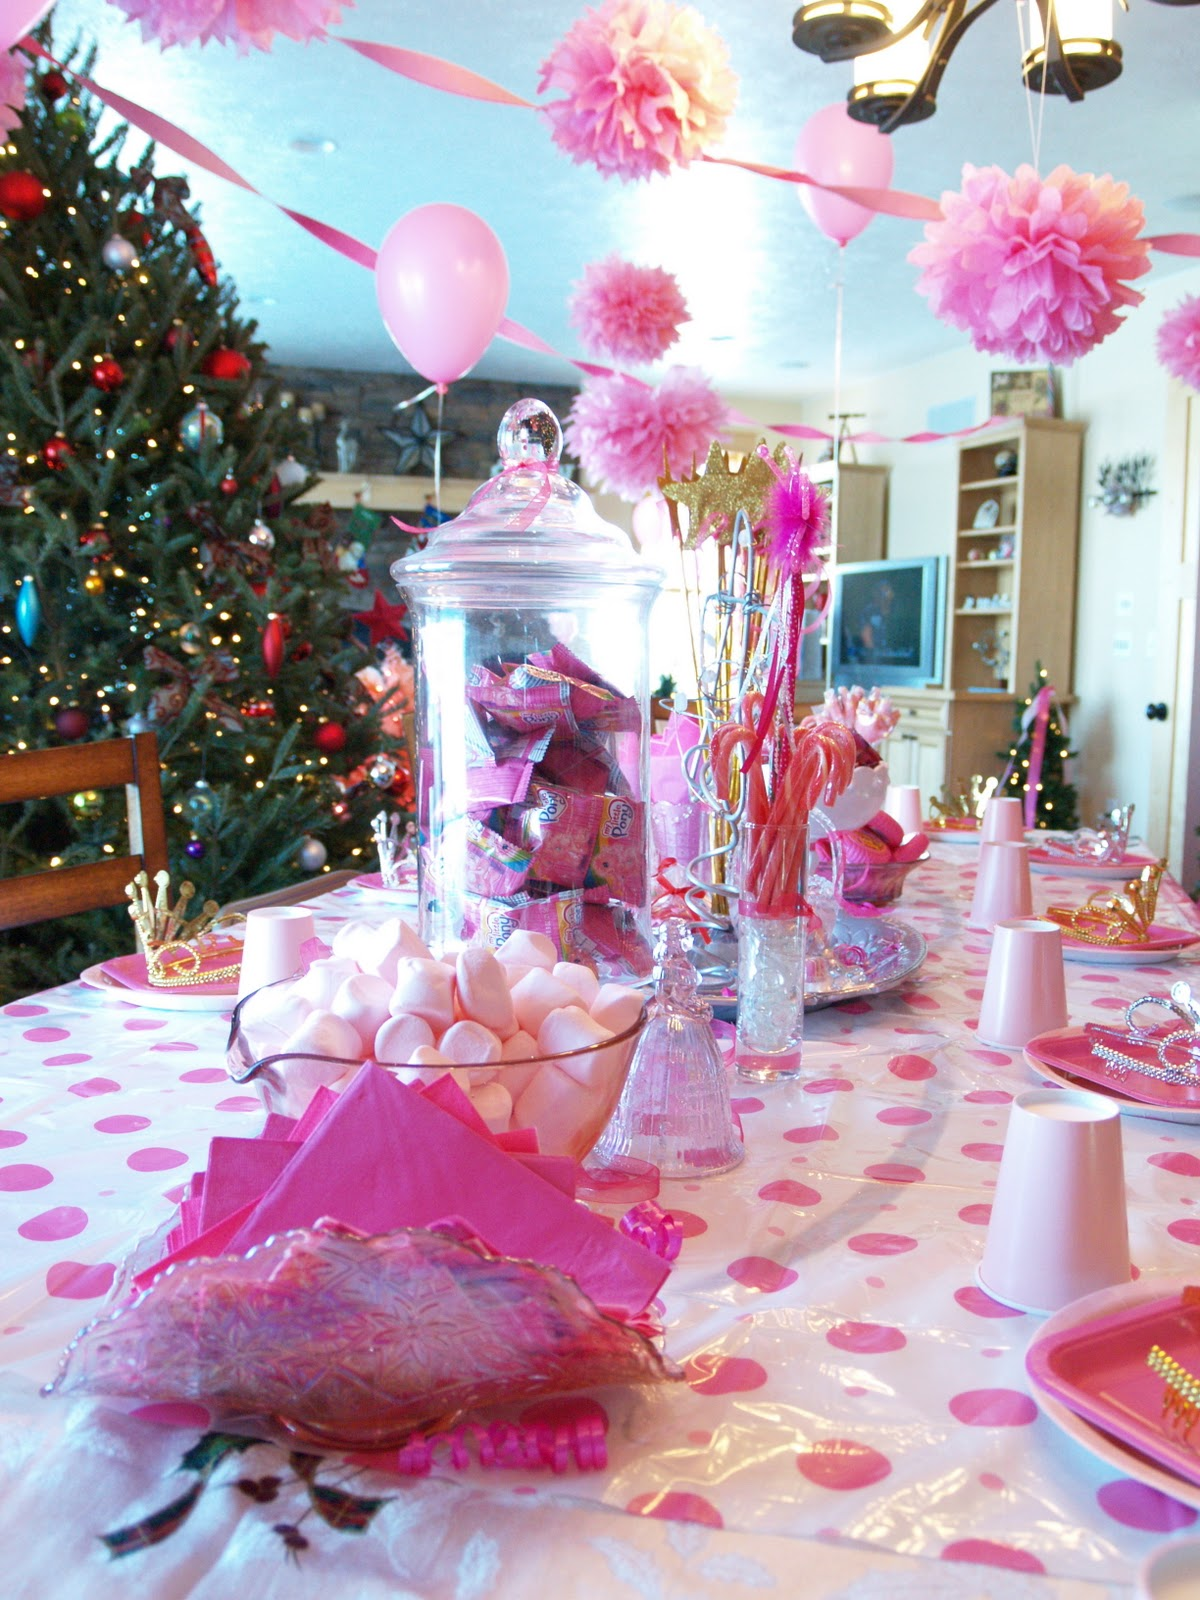 Show Us Your Life: A Pinkalicious Birthday Party - The ...